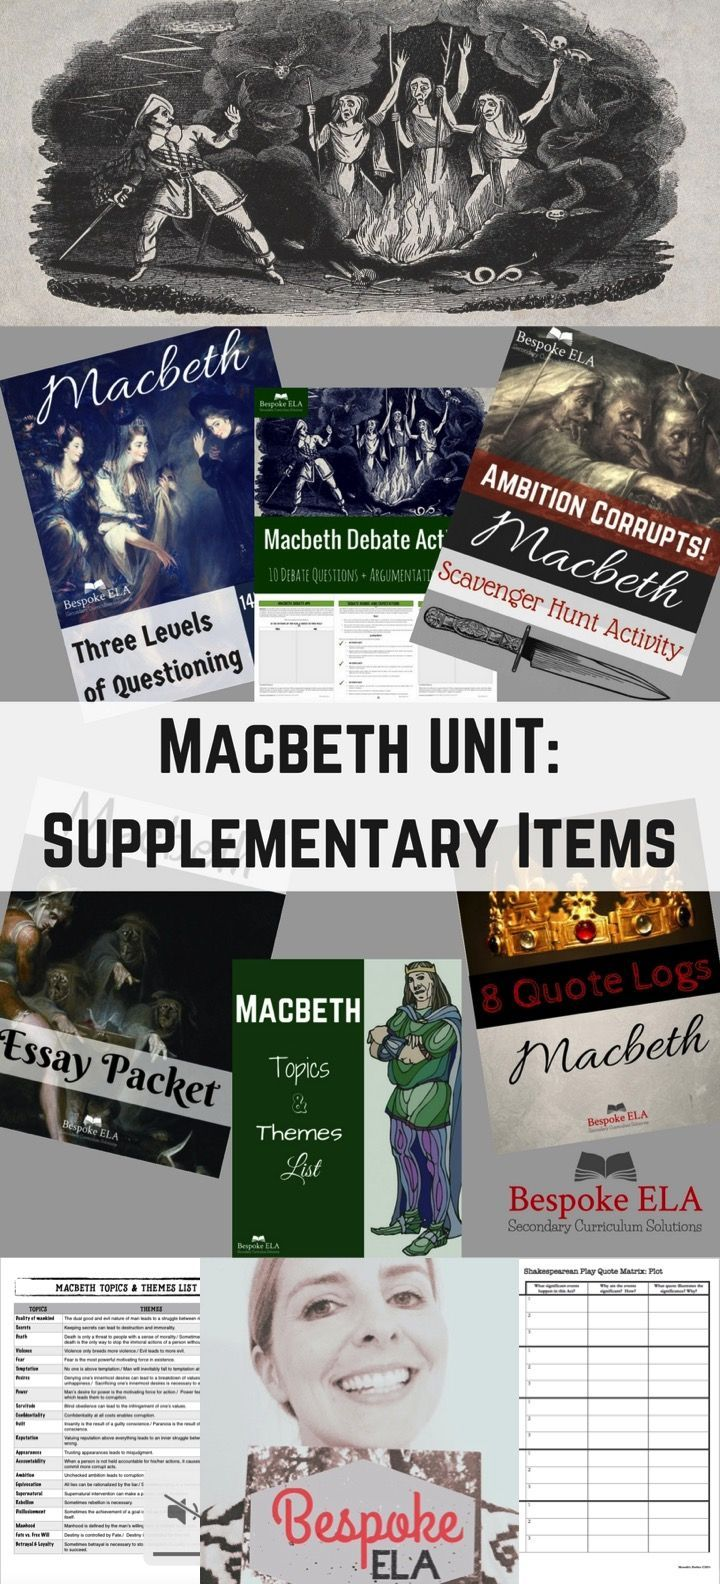 standard english essay about macbeth After reading macbeth, write an essay that addresses the question and analyzes  to  stop & write: after class discussion, answer the following questions in their   then have students pair up and re-write scenes v & vii in modern english 3.